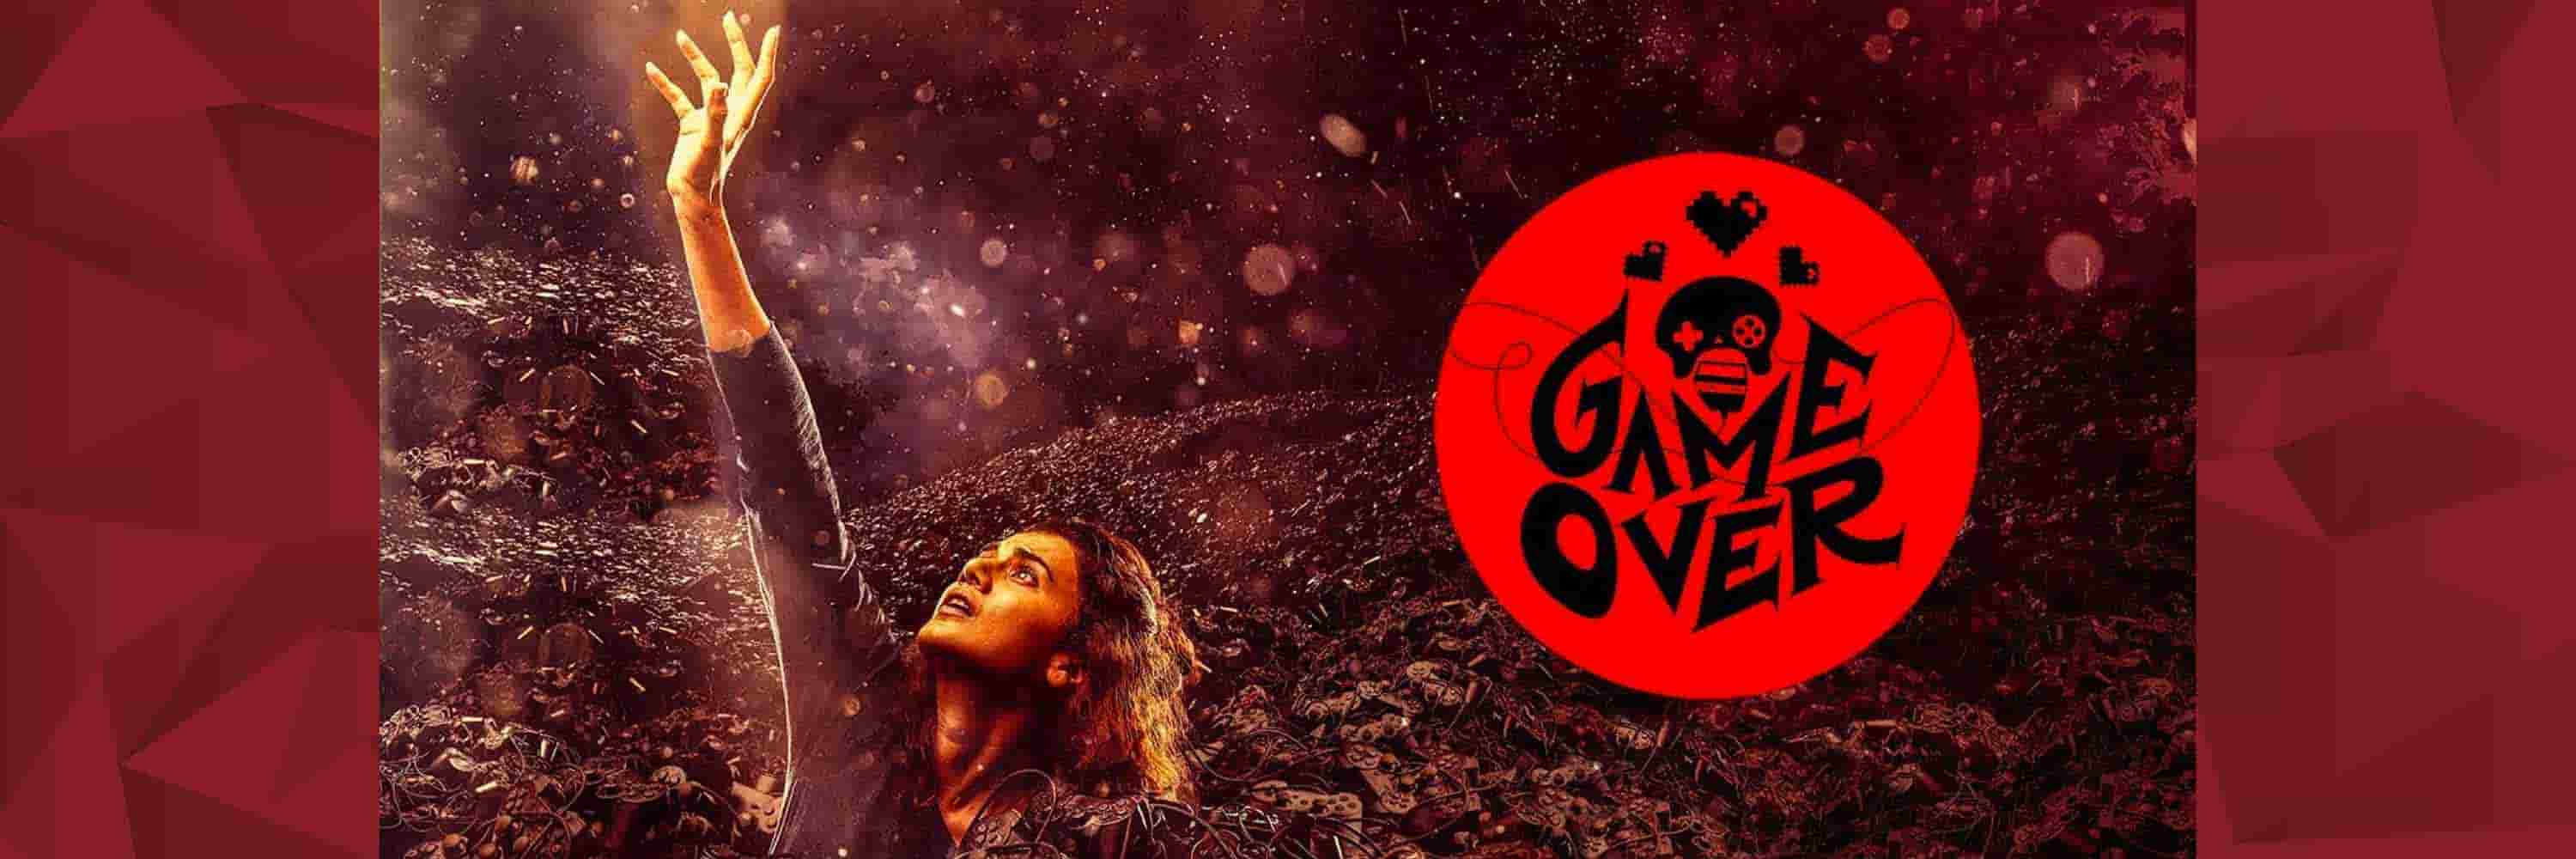 Review of Game Over | Twisted tale of terror - 89 1 Radio 4